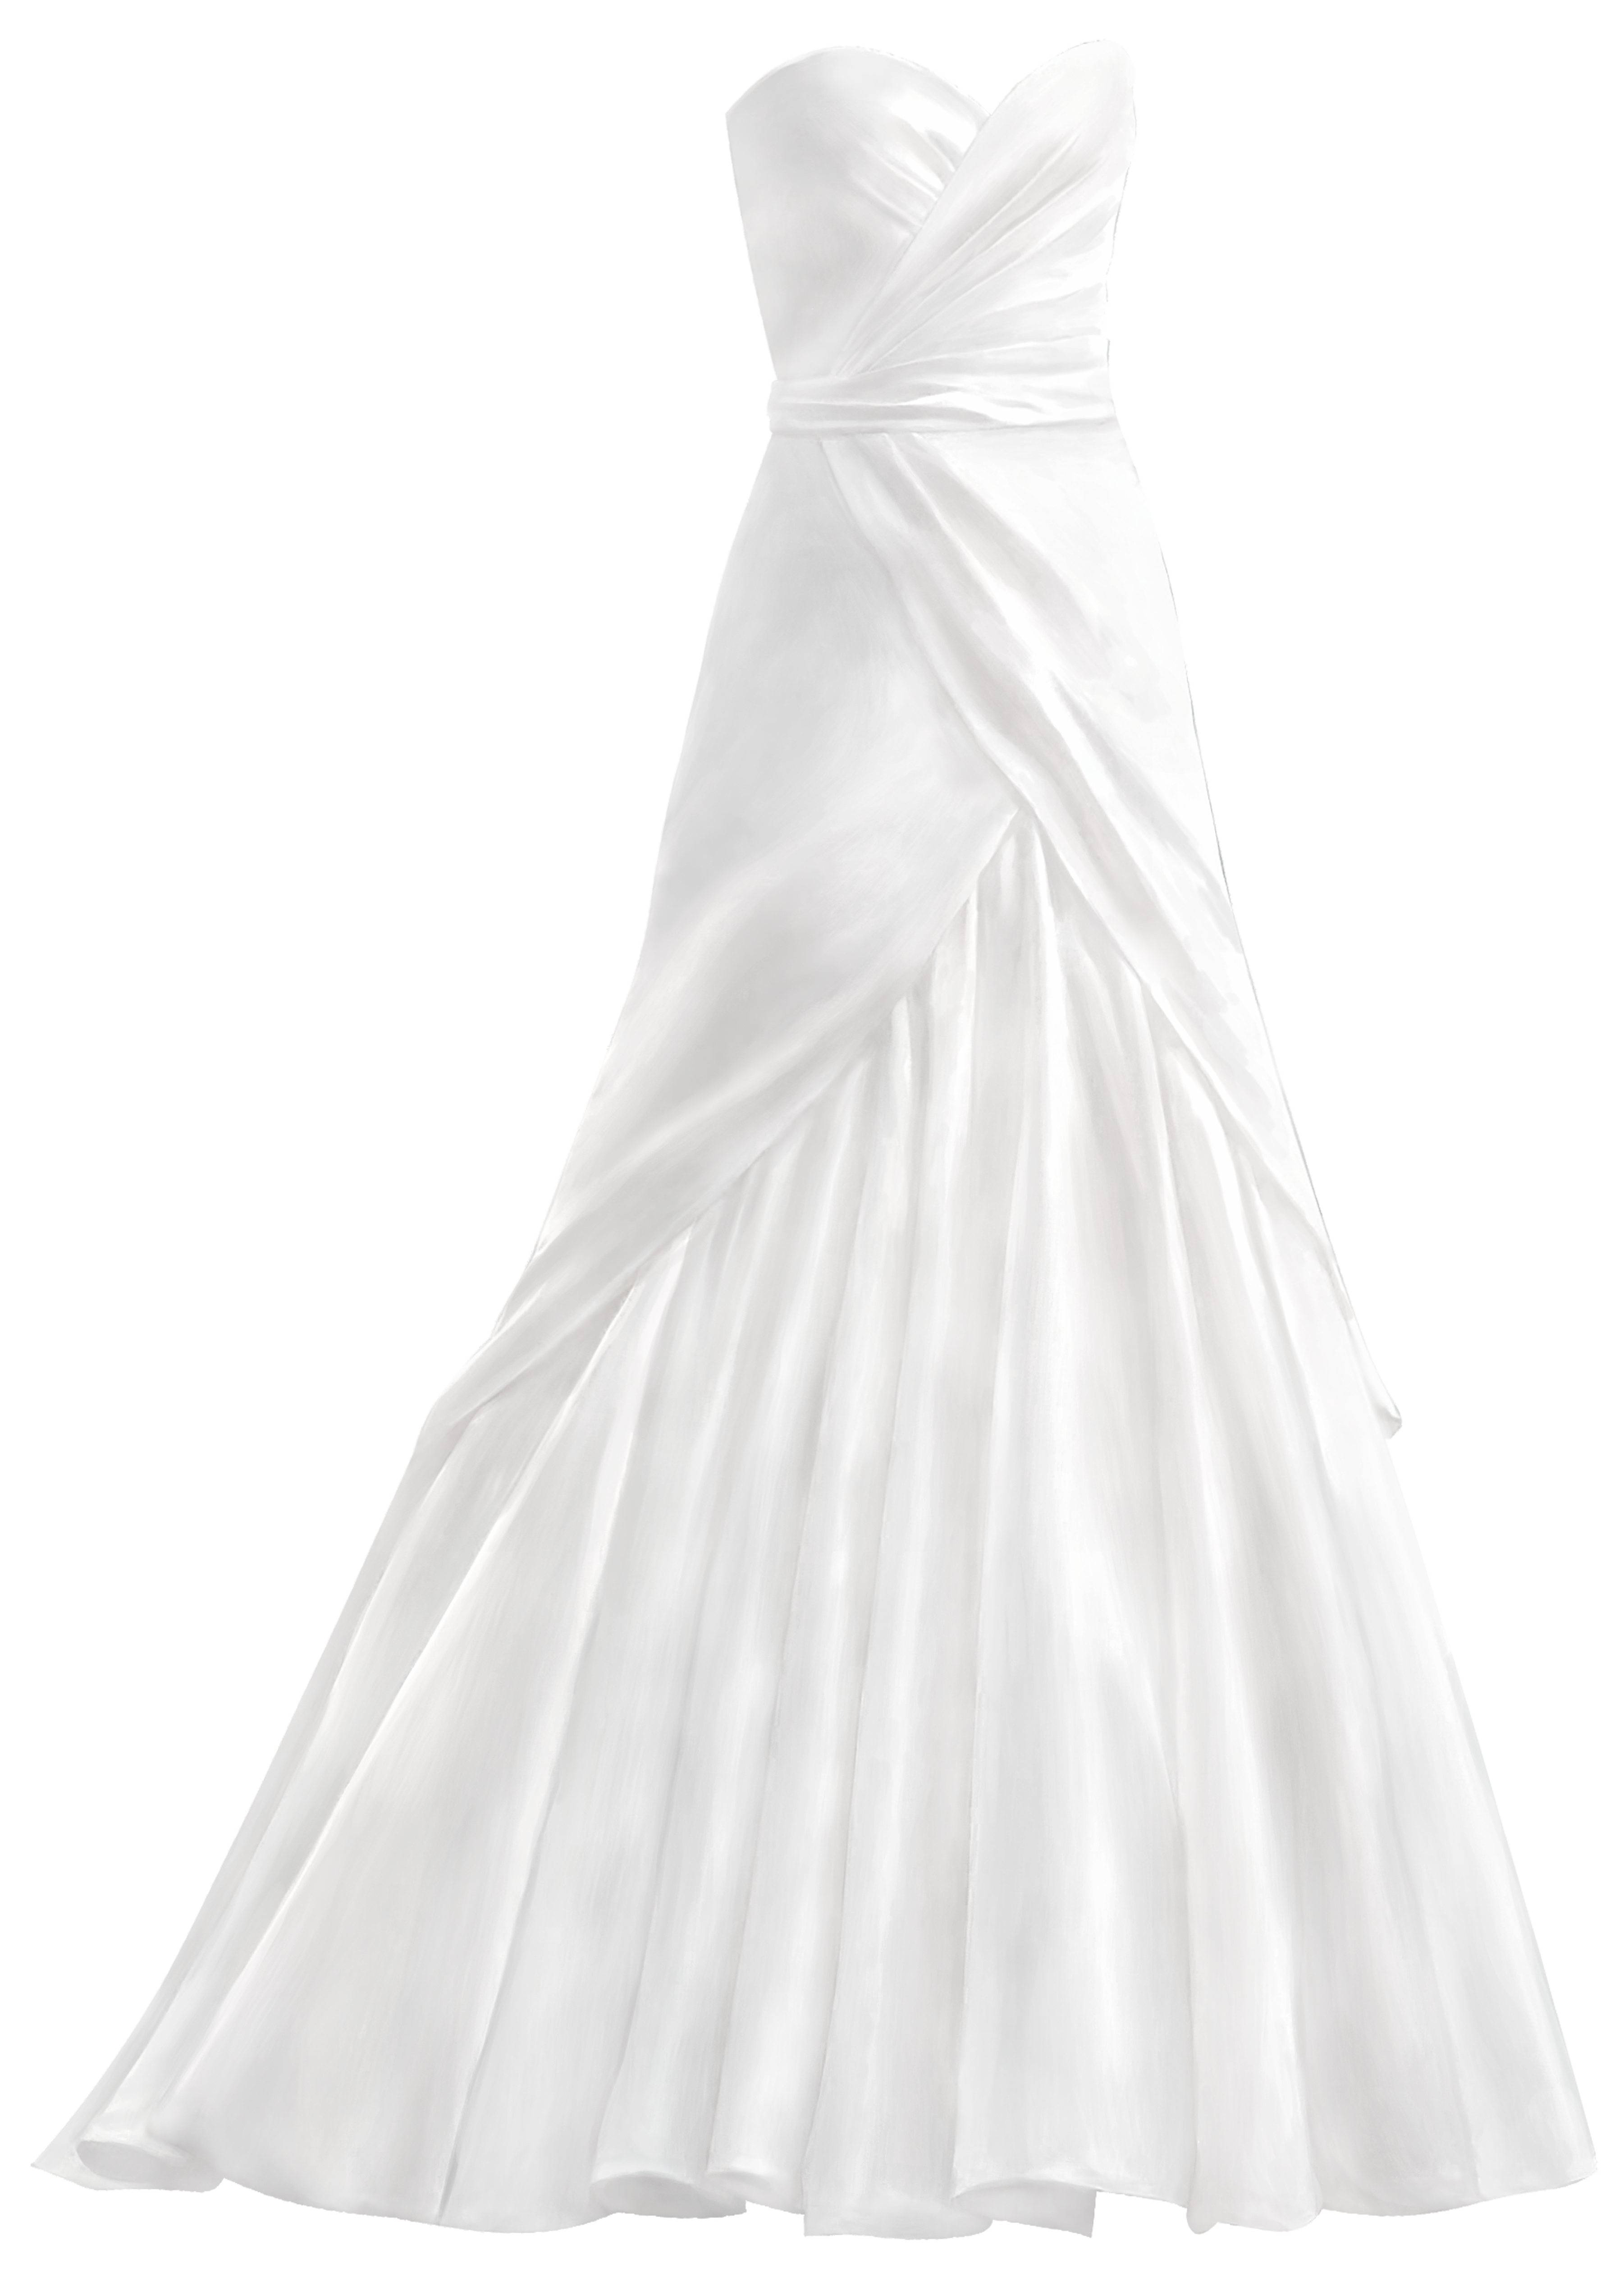 White dress png clip. Clipart anchor wedding